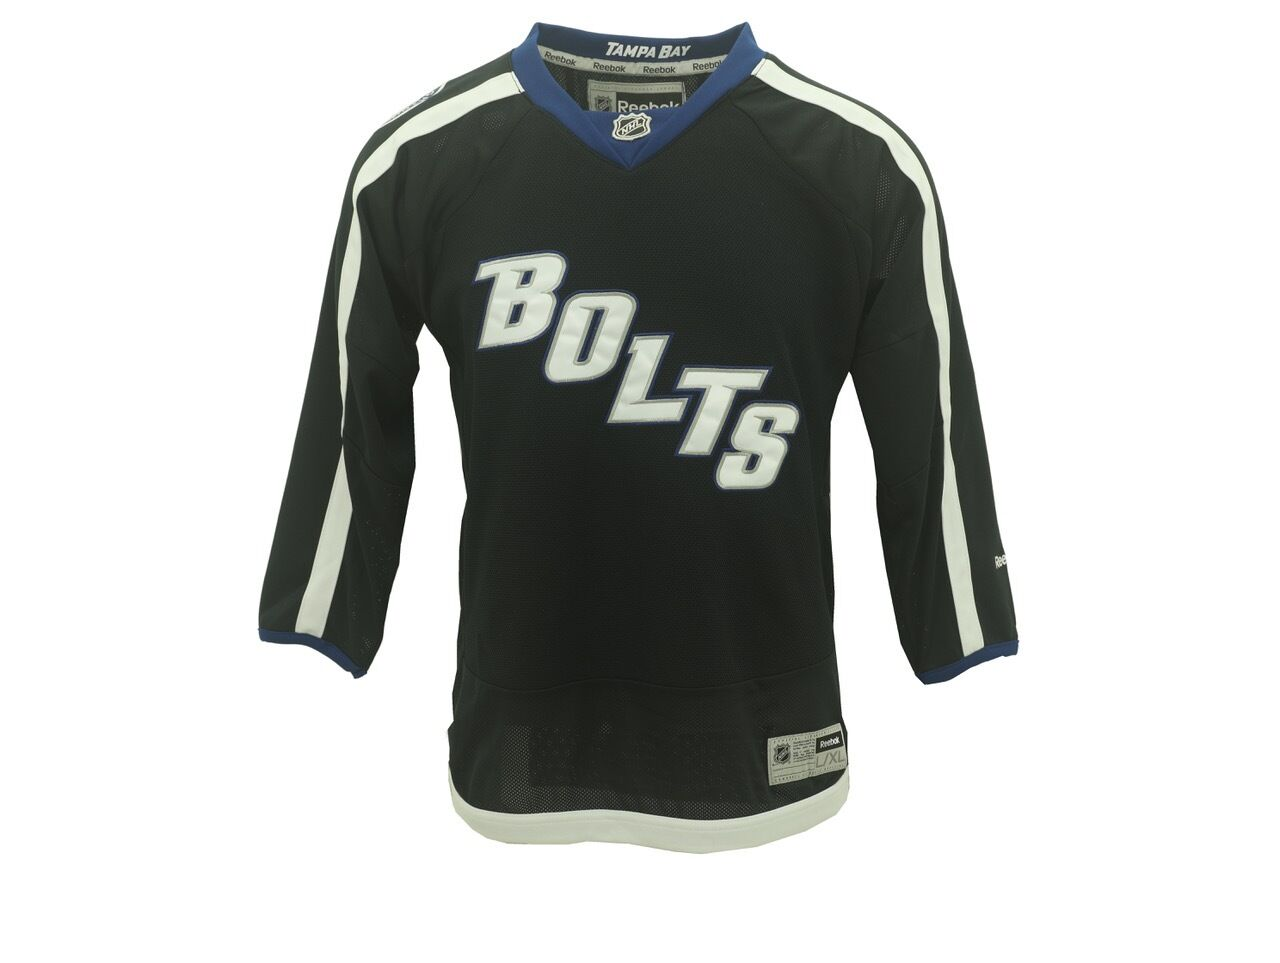 aa410056 Details about NHL Kids Youth Size Tampa Bay Lightning Reebok Alternate  Jersey New With Tags